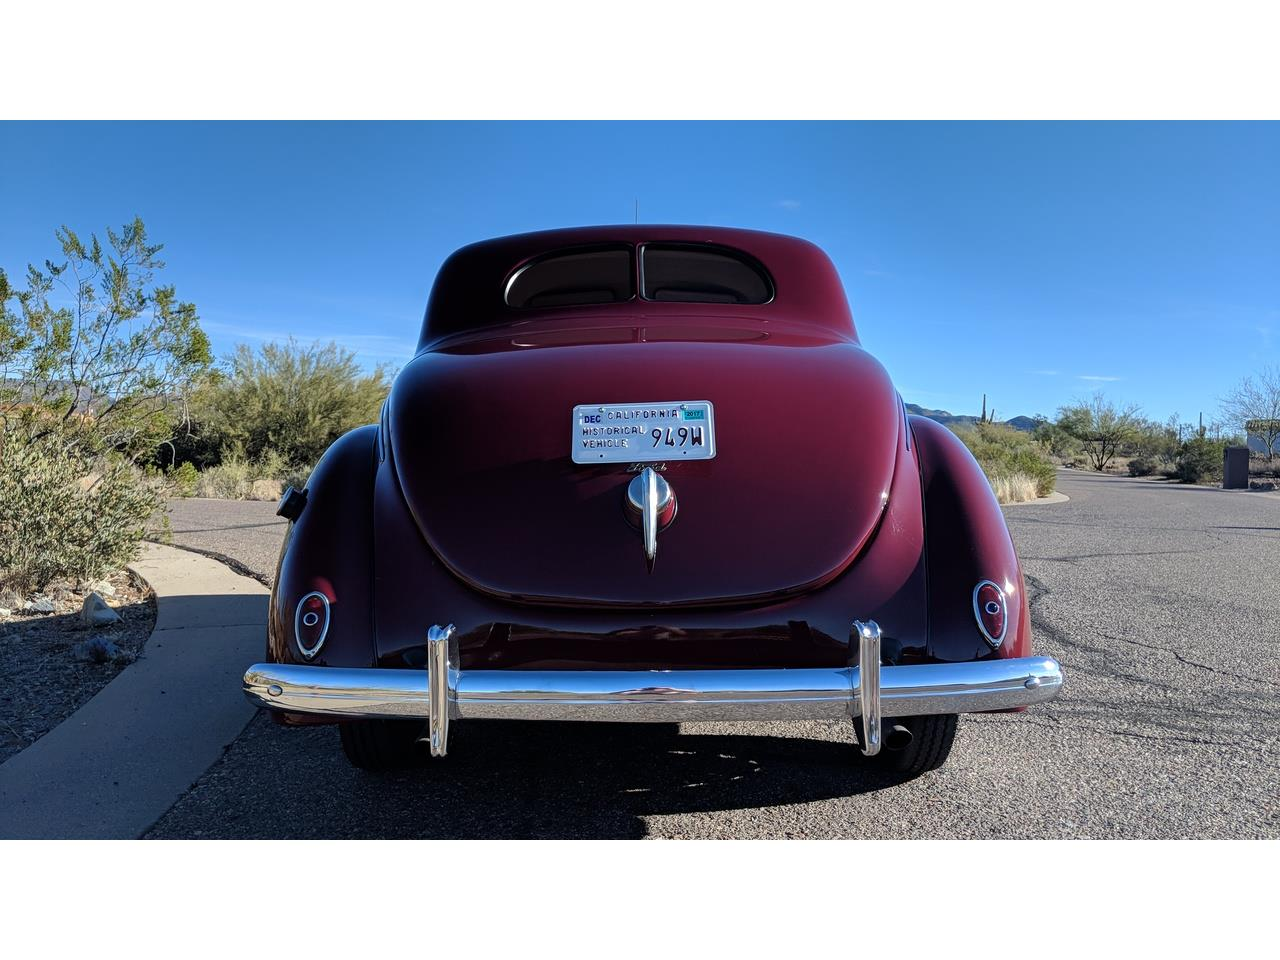 Large Picture of Classic '39 Deluxe located in Cave Creek Arizona - $49,500.00 Offered by a Private Seller - NQG9